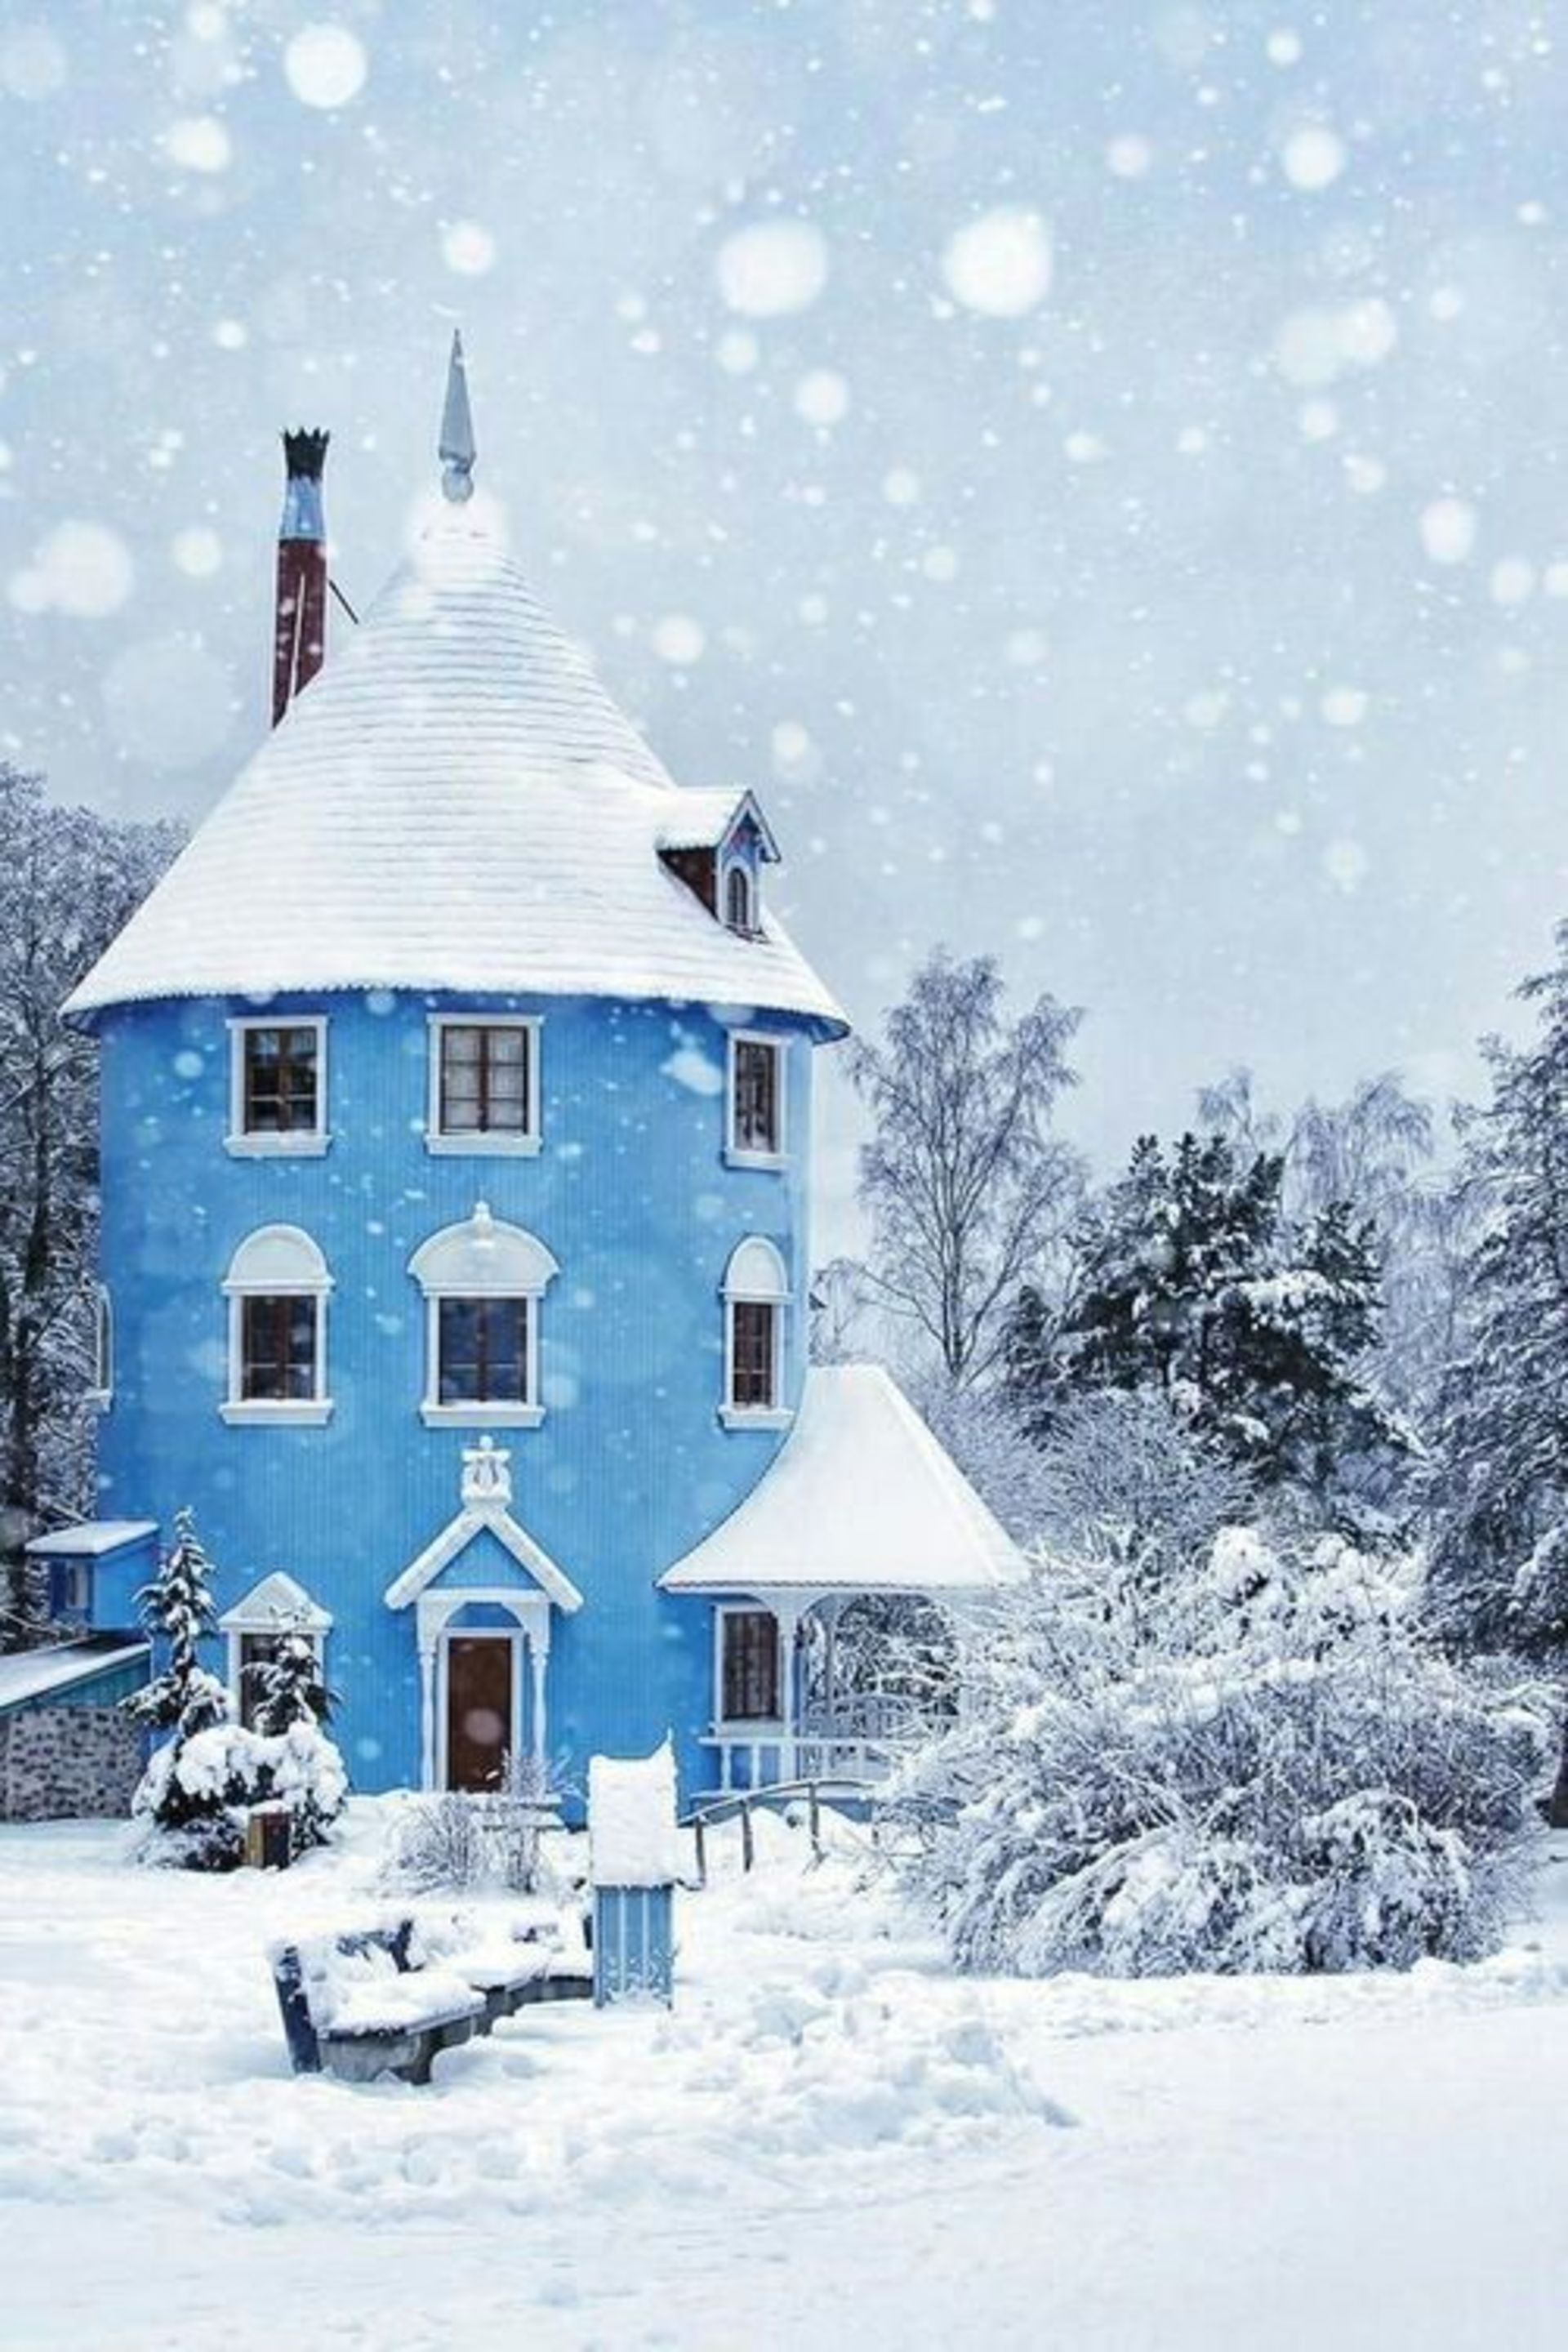 4 Good Reasons to Buy Your Dream Home This Winter